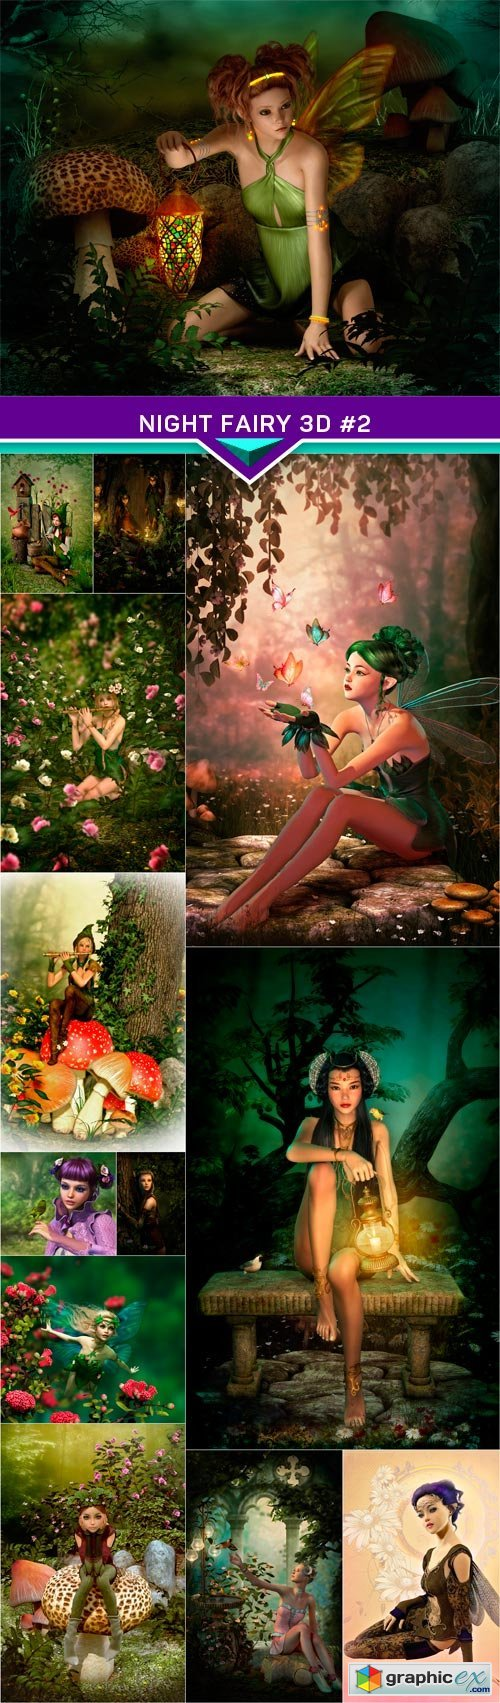 Night Fairy 3d #2 13X JPEG